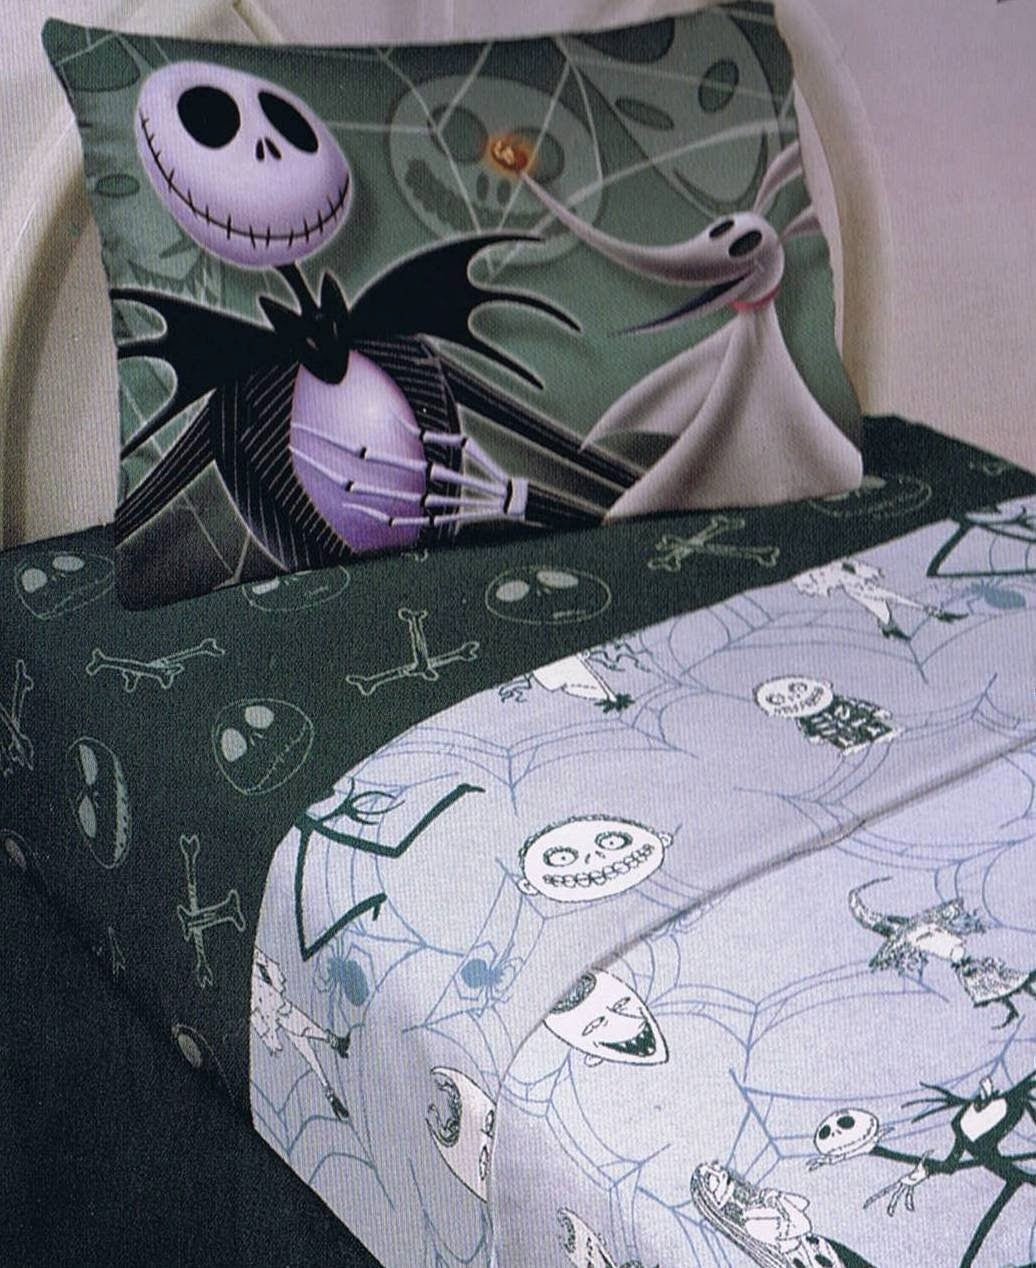 tim burton 39 s the nightmare before christmas themed bedroom decor ideas